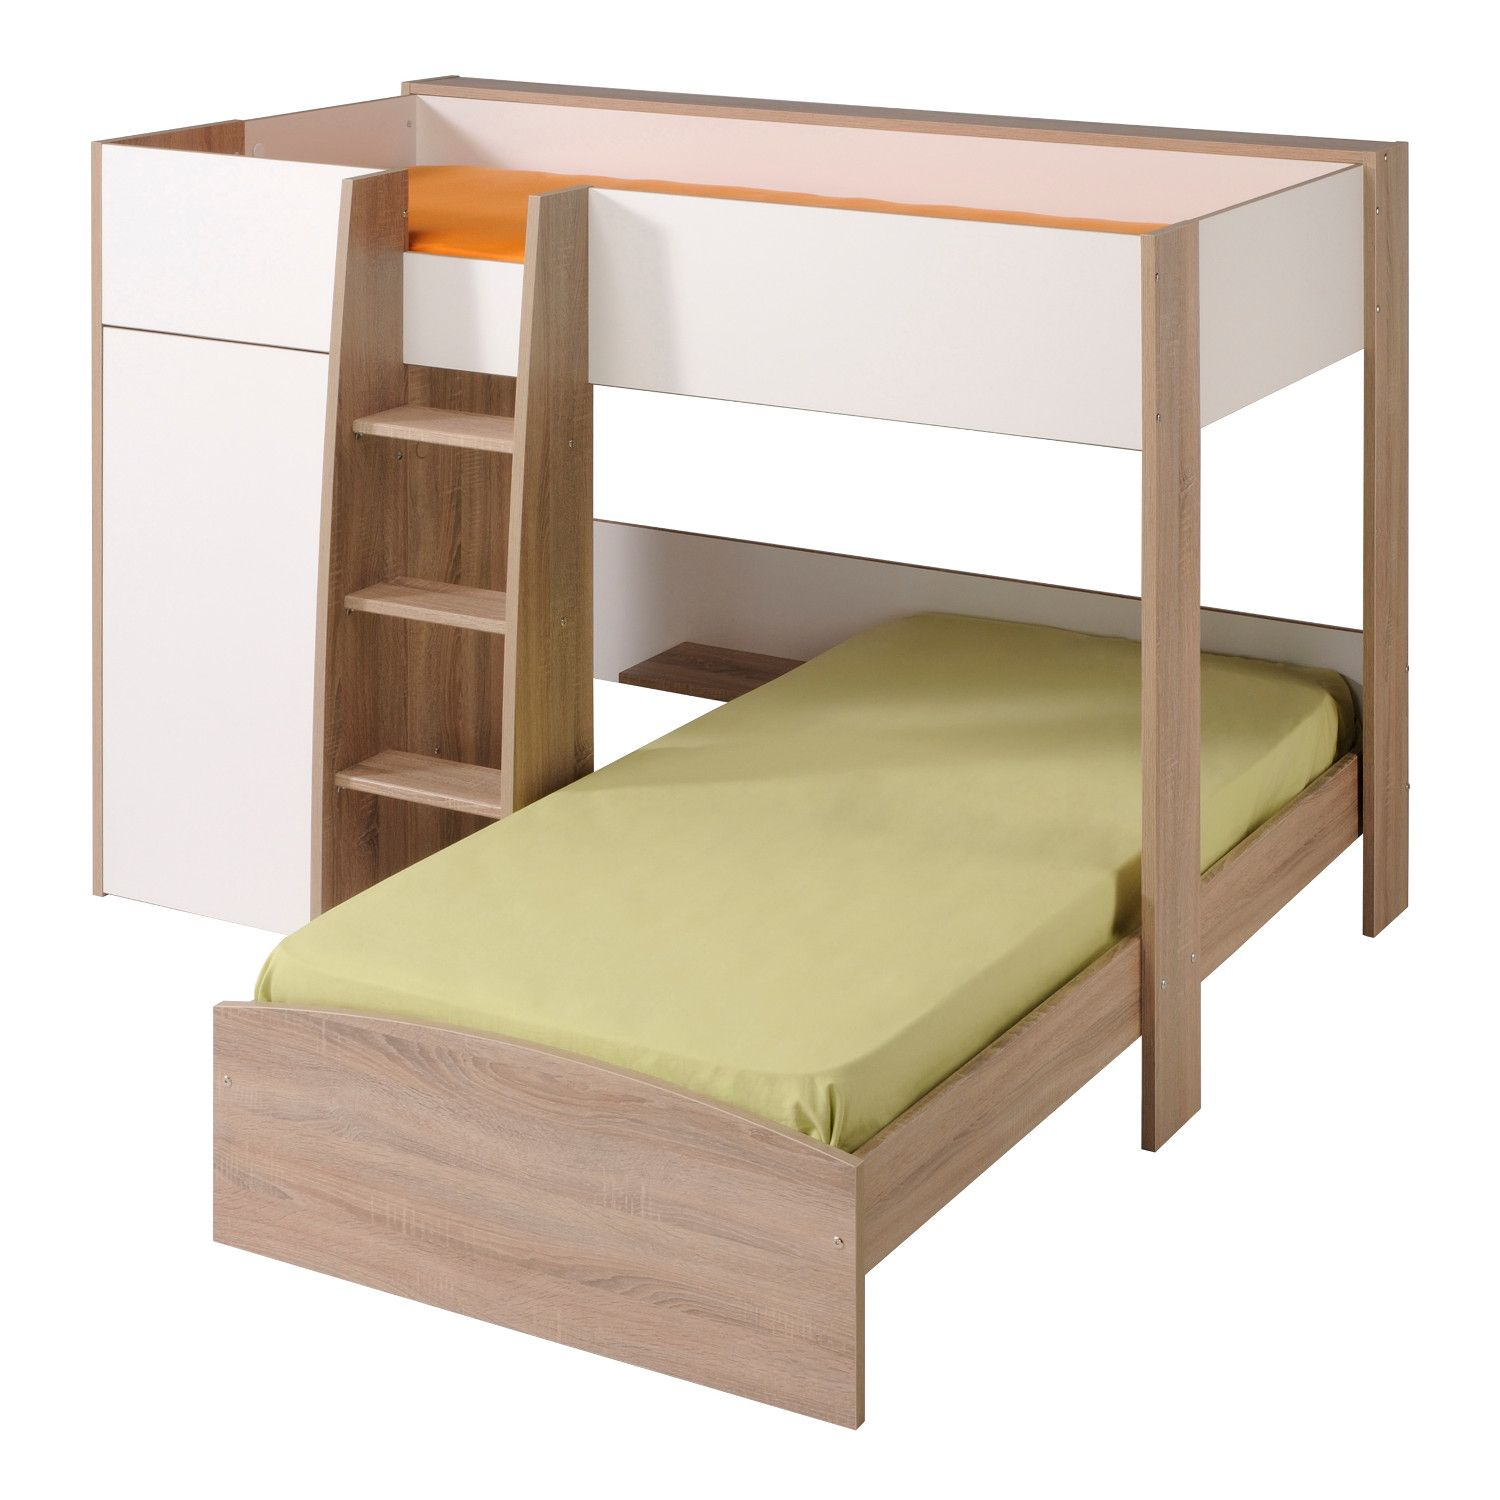 Loft bunk bed with desk   Interesting L Shaped Bunk Beds Design Ideas Youull Love  Bunk